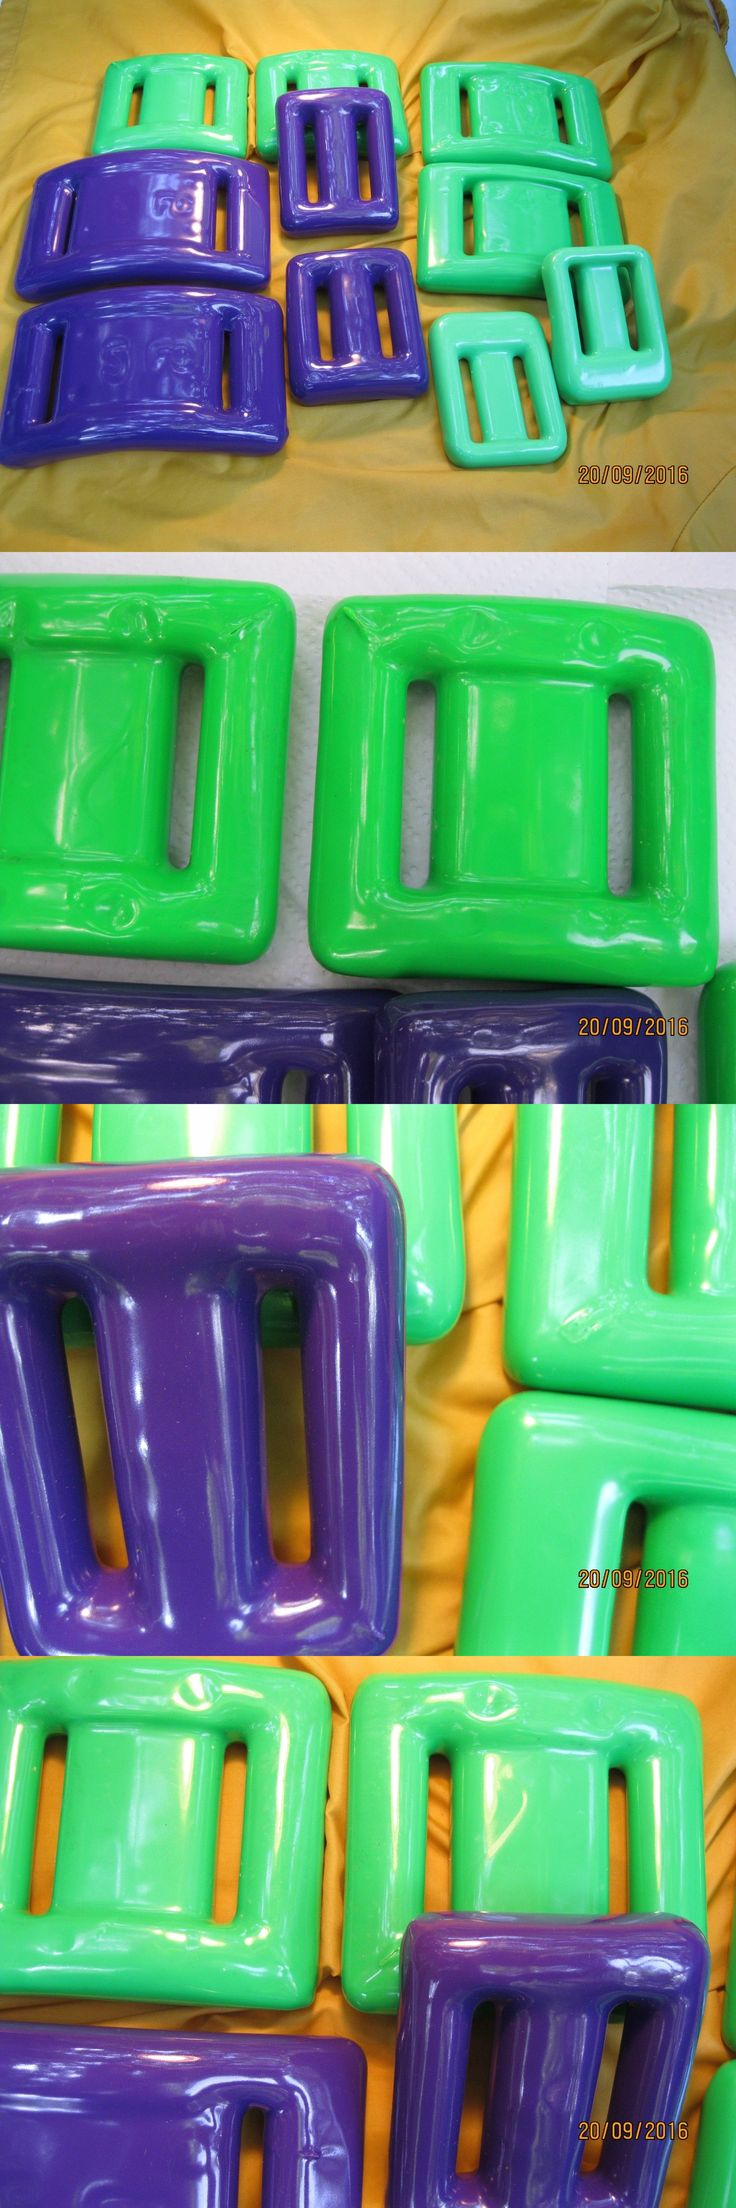 Weight Belts 74004: Scuba Dive Weights Coated Neon Green And Purple For Bcd Or Belt 10 Pieces 30+ Lbs BUY IT NOW ONLY: $119.99